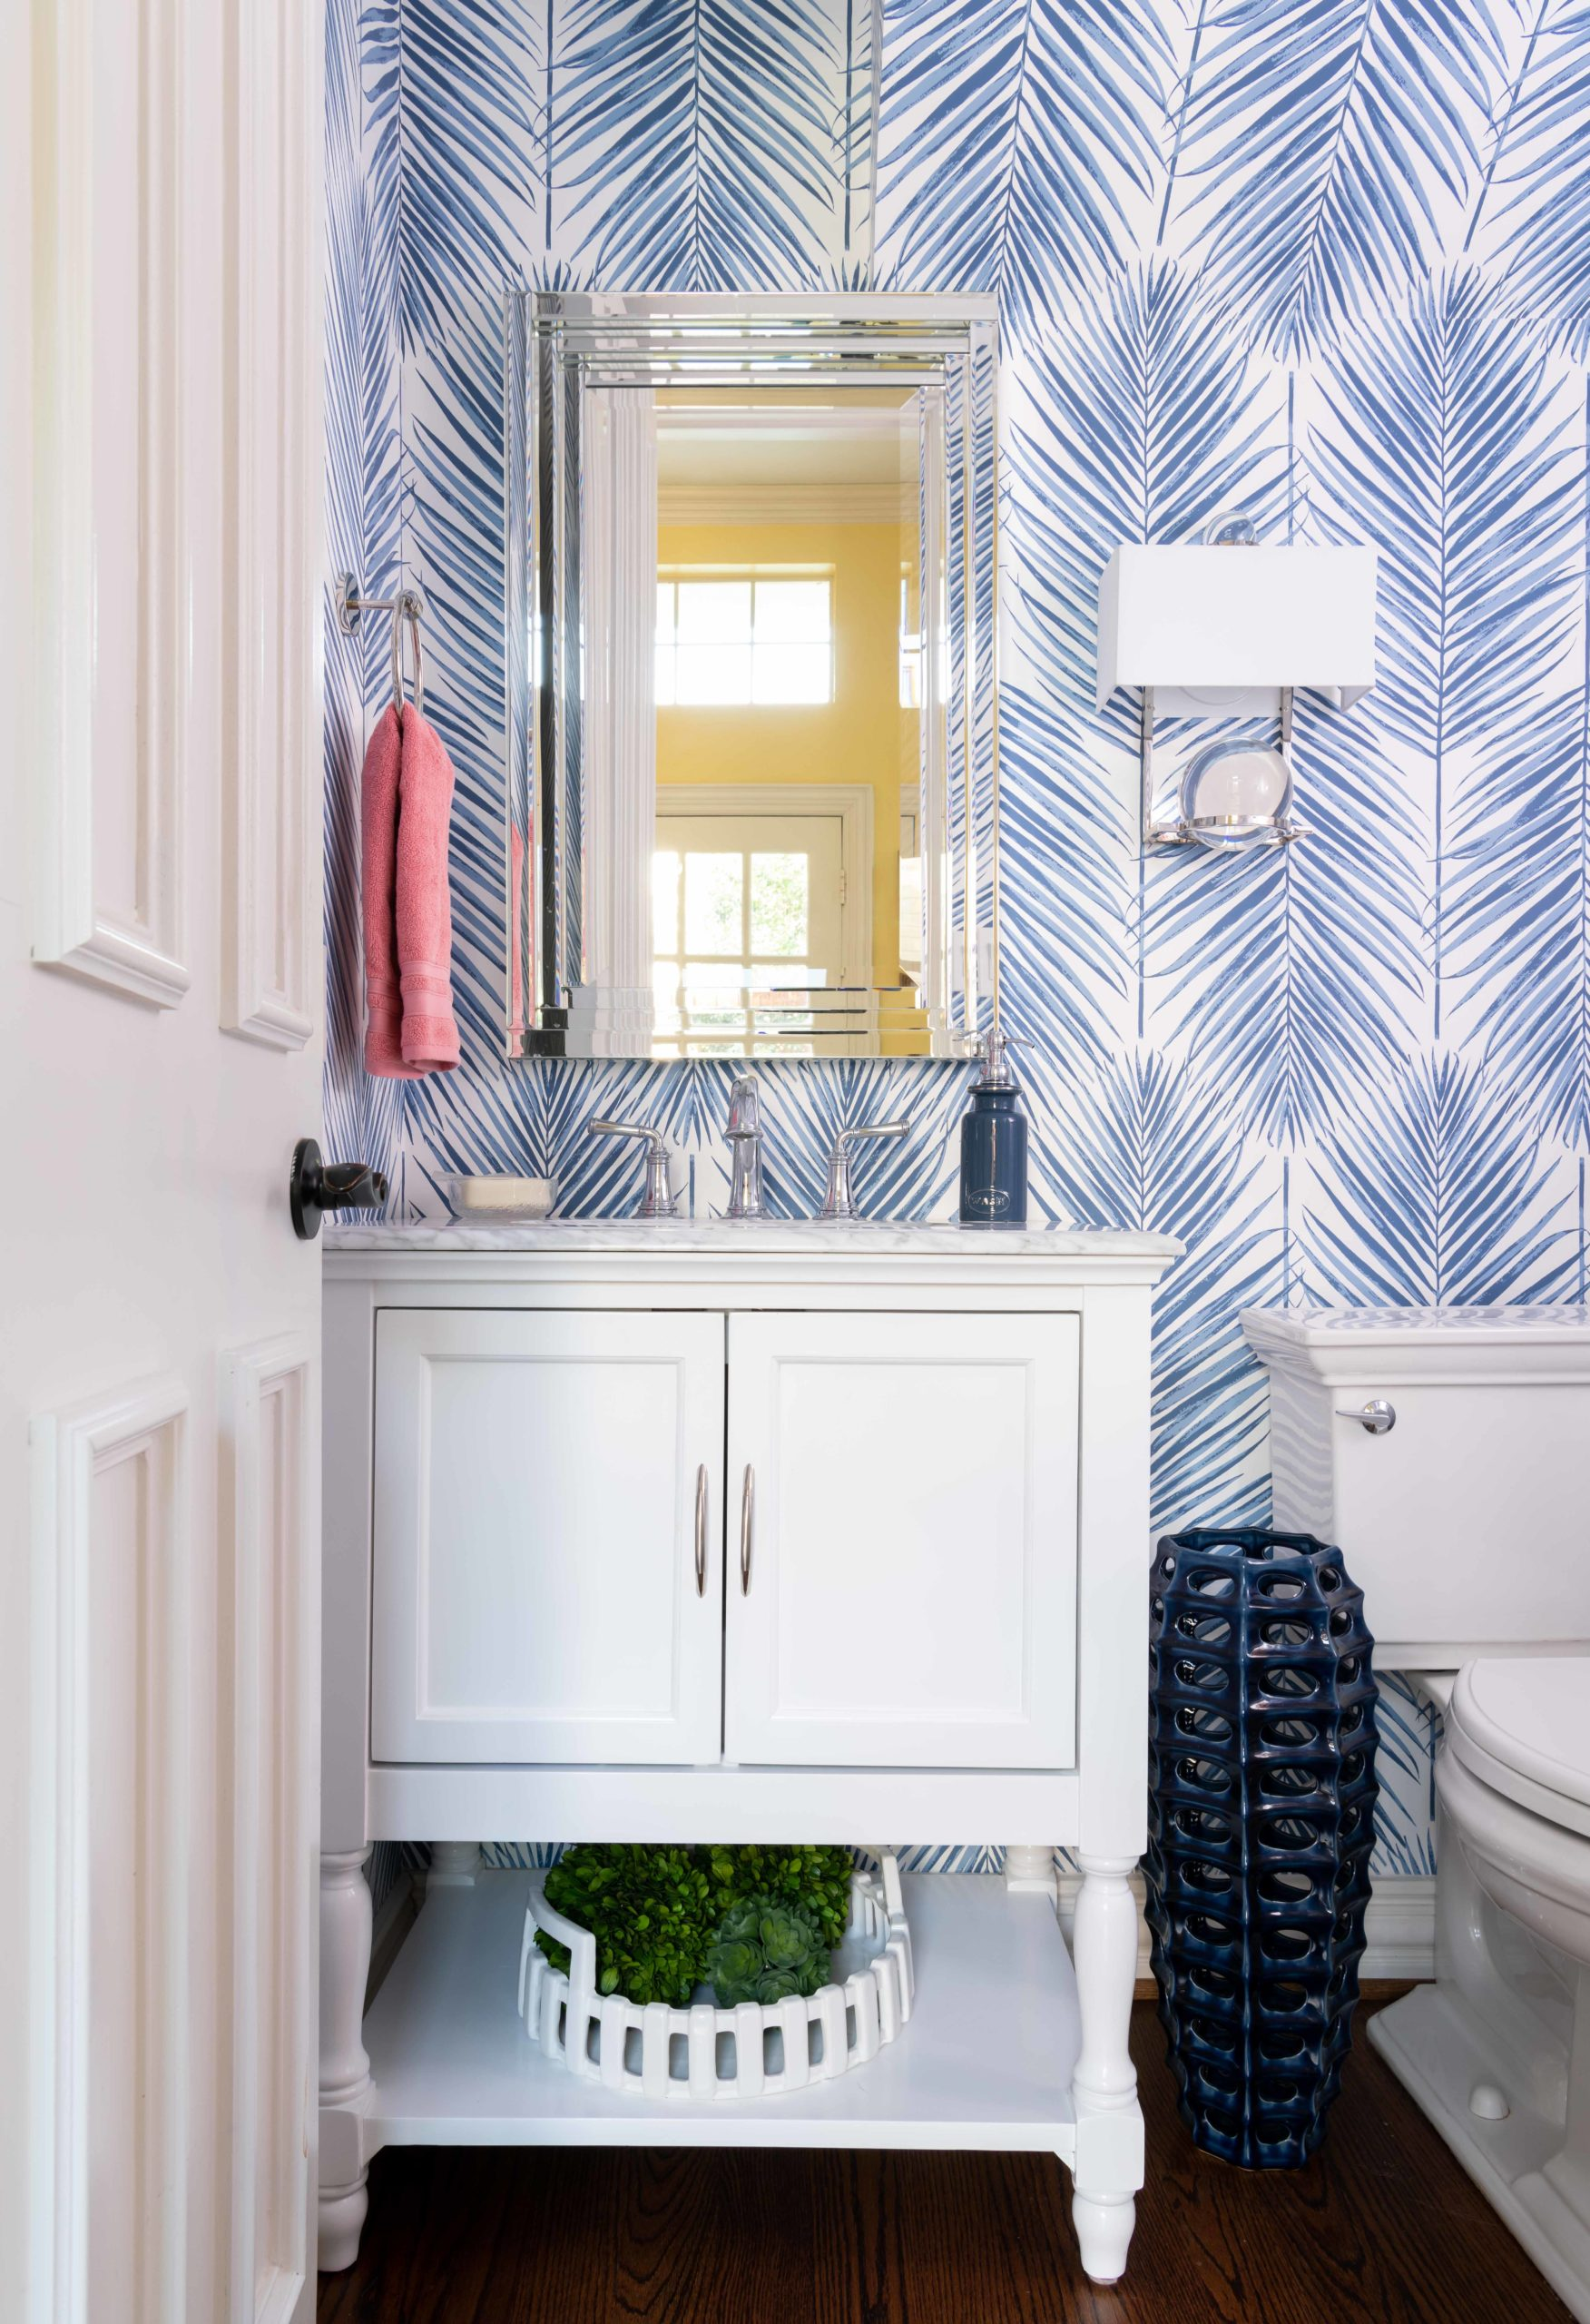 powder room ideas with blue palm leaf wallpaper with white vanity cabinet seabrook, Dallas texas, powder room, bathroom design by Dee Frazier Interiors, Dallas Interior Designers